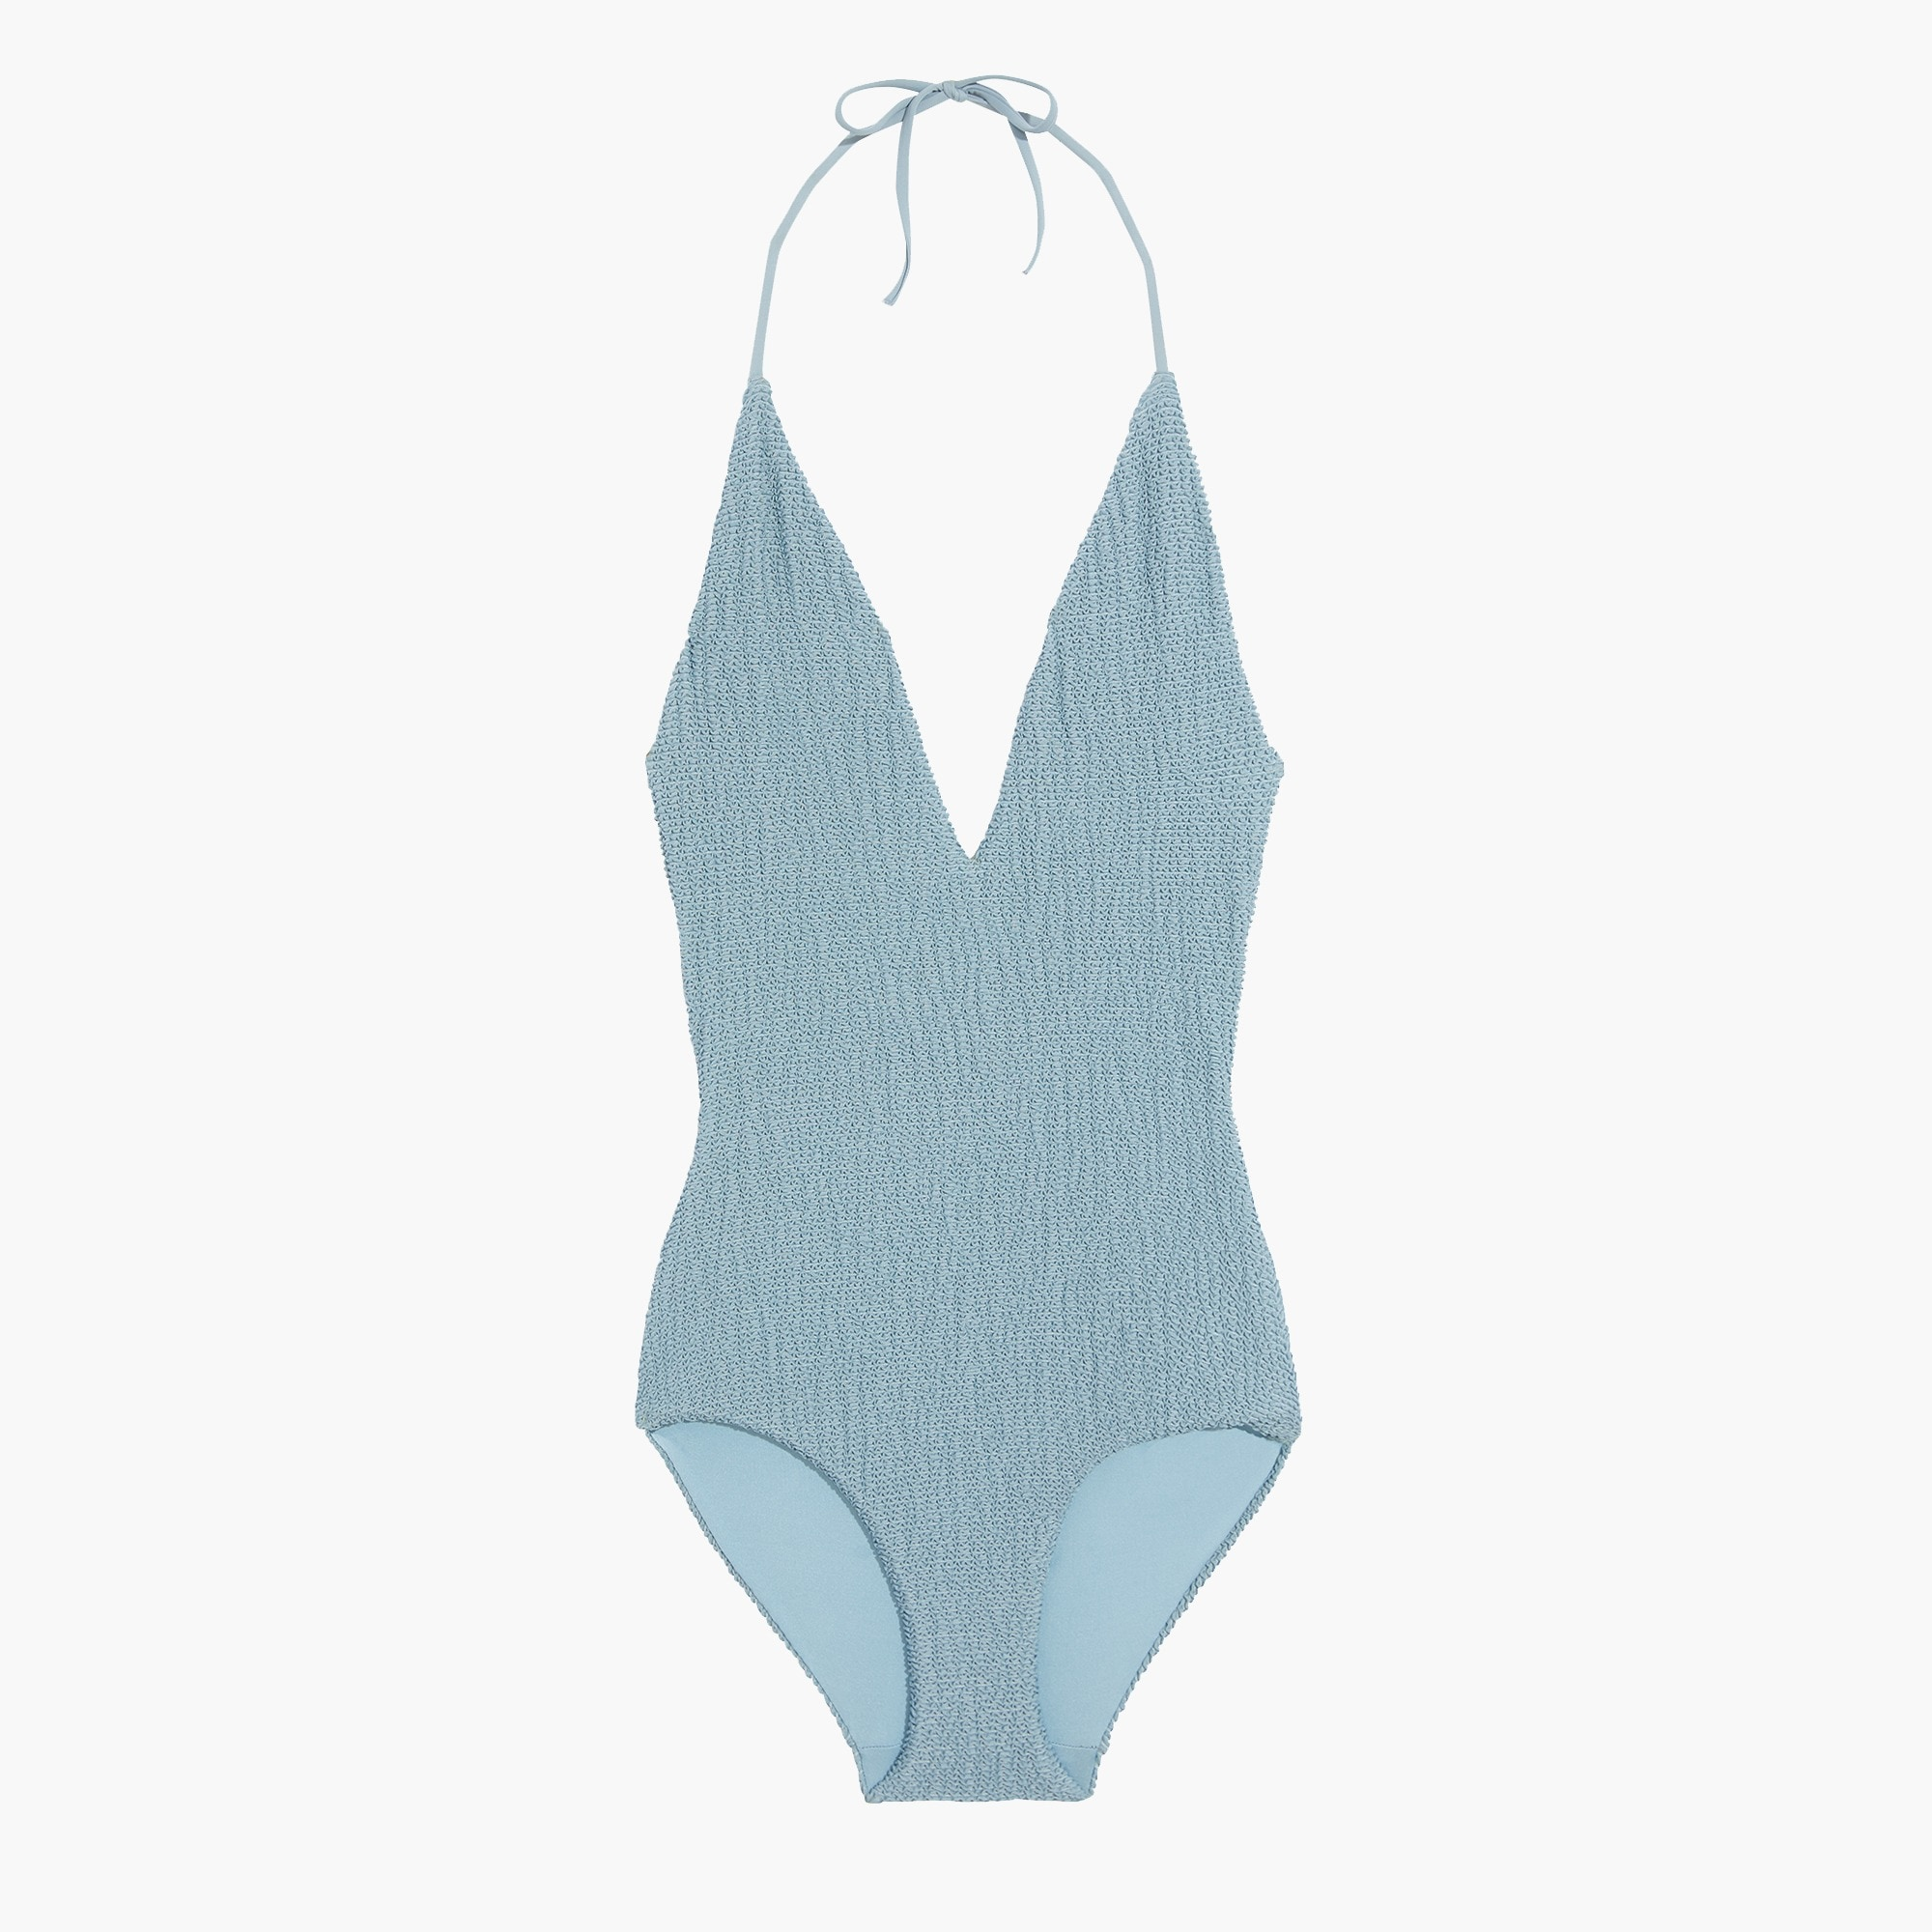 Image 4 for Onia Nina solid one-piece